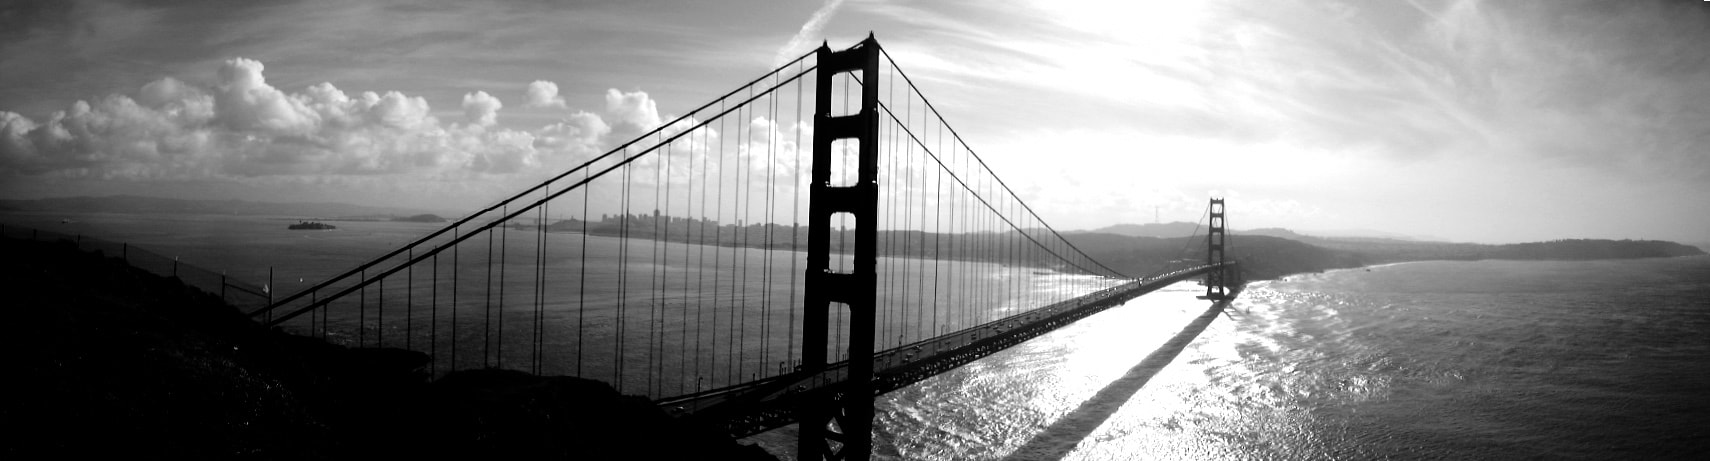 Photograph Golden Gate by Mike Howe on 500px